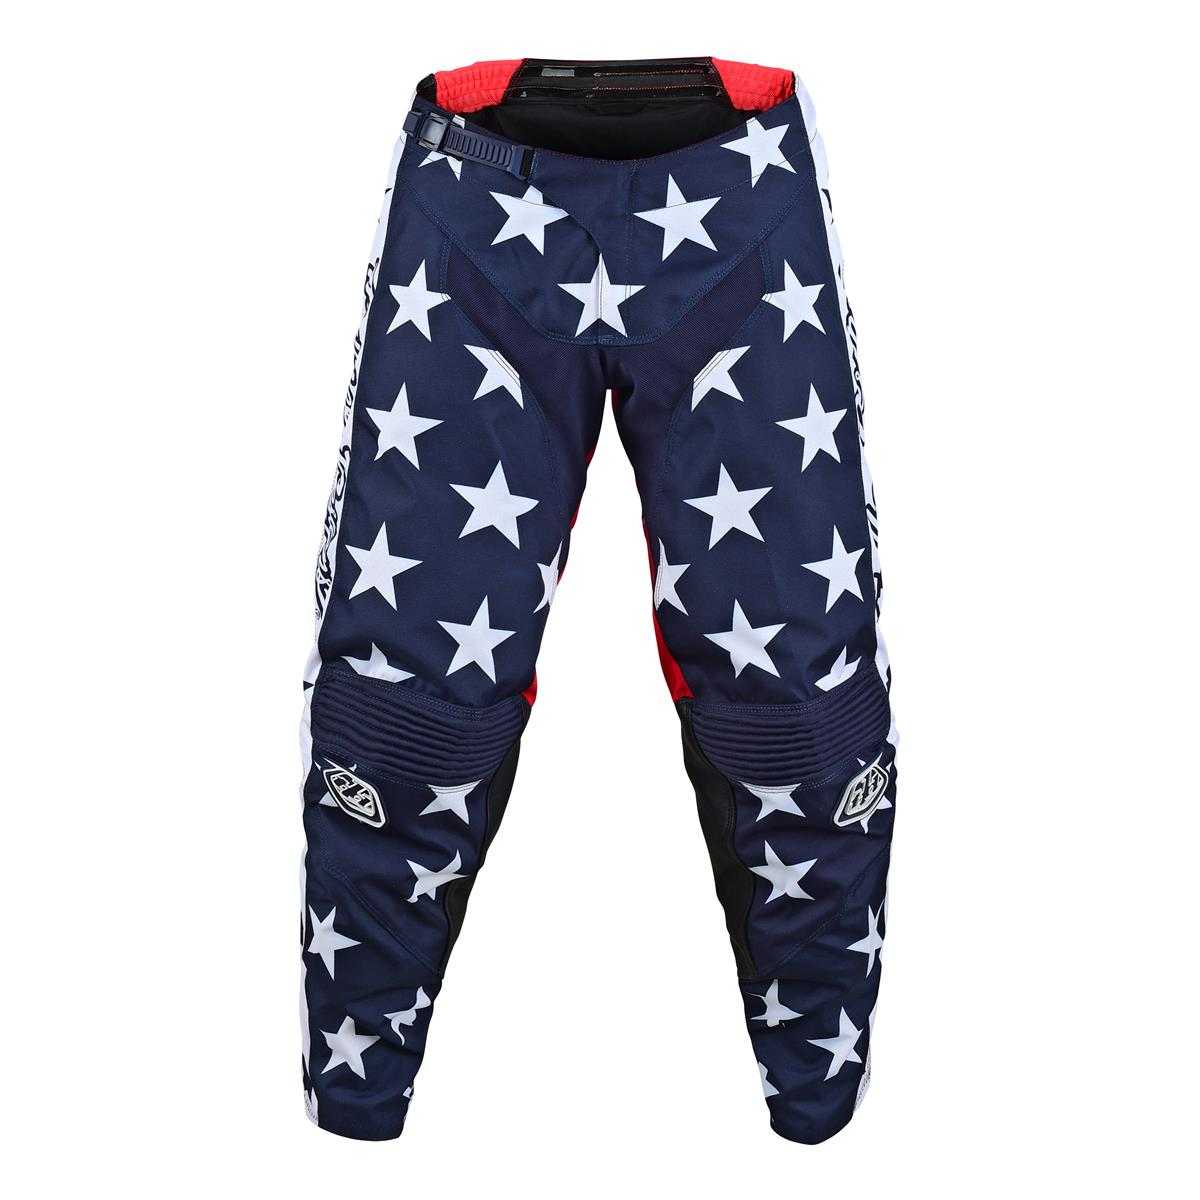 Troy Lee Designs GP Independence Limited Edition Mens Off-Road Motorcycle Pants 28 Navy//Red